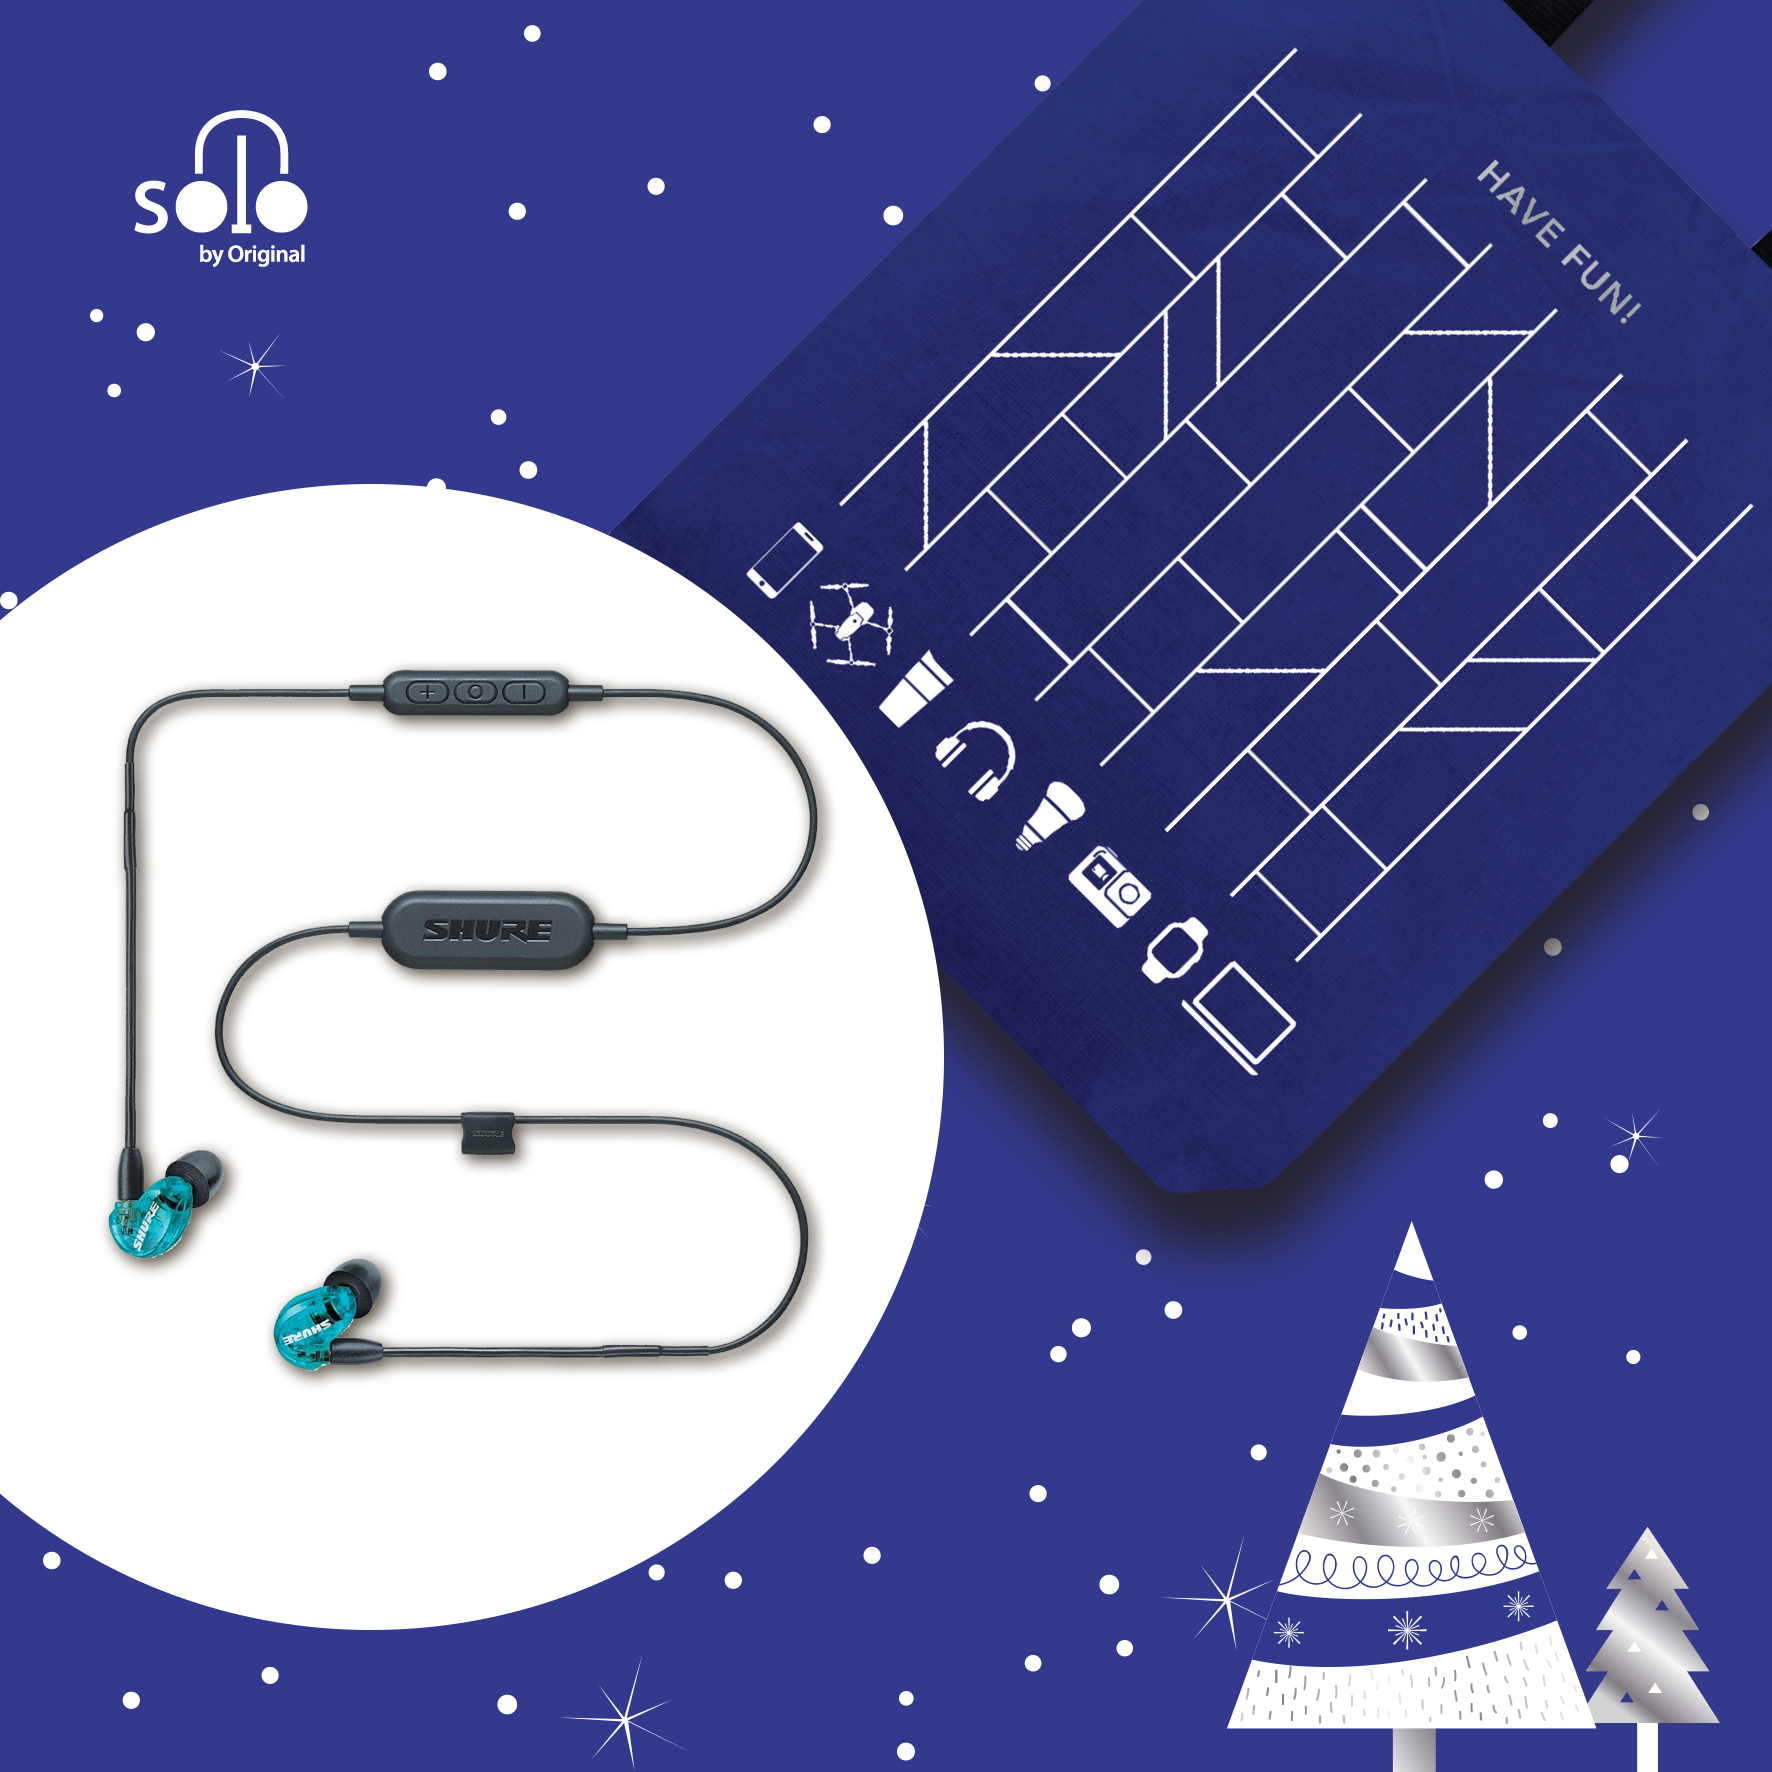 Shure 215 Wireless Earphones 無線入耳式耳機 - SE215 將 Shure 的音色帶到藍牙型無線耳機之中,單次充電可連續使用 8 小時,而每次更可同時連接兩個設備,在 10 米範圍內帶給你自由而且低音豐富的音樂。耳機線上同時具備按鍵控制及免提通話功能,不論通話、語音指令,或日常使用都可以應付自如。SE215 is the combination of Shure's audio performance and Bluetooth's convenient connectivity. With up to 8 hours of battery and a range of 10 metres, the earphones can pair 2 devices at once to deliver powerful music; also featuring remote control, and a microphone for phone calls and voice commands.